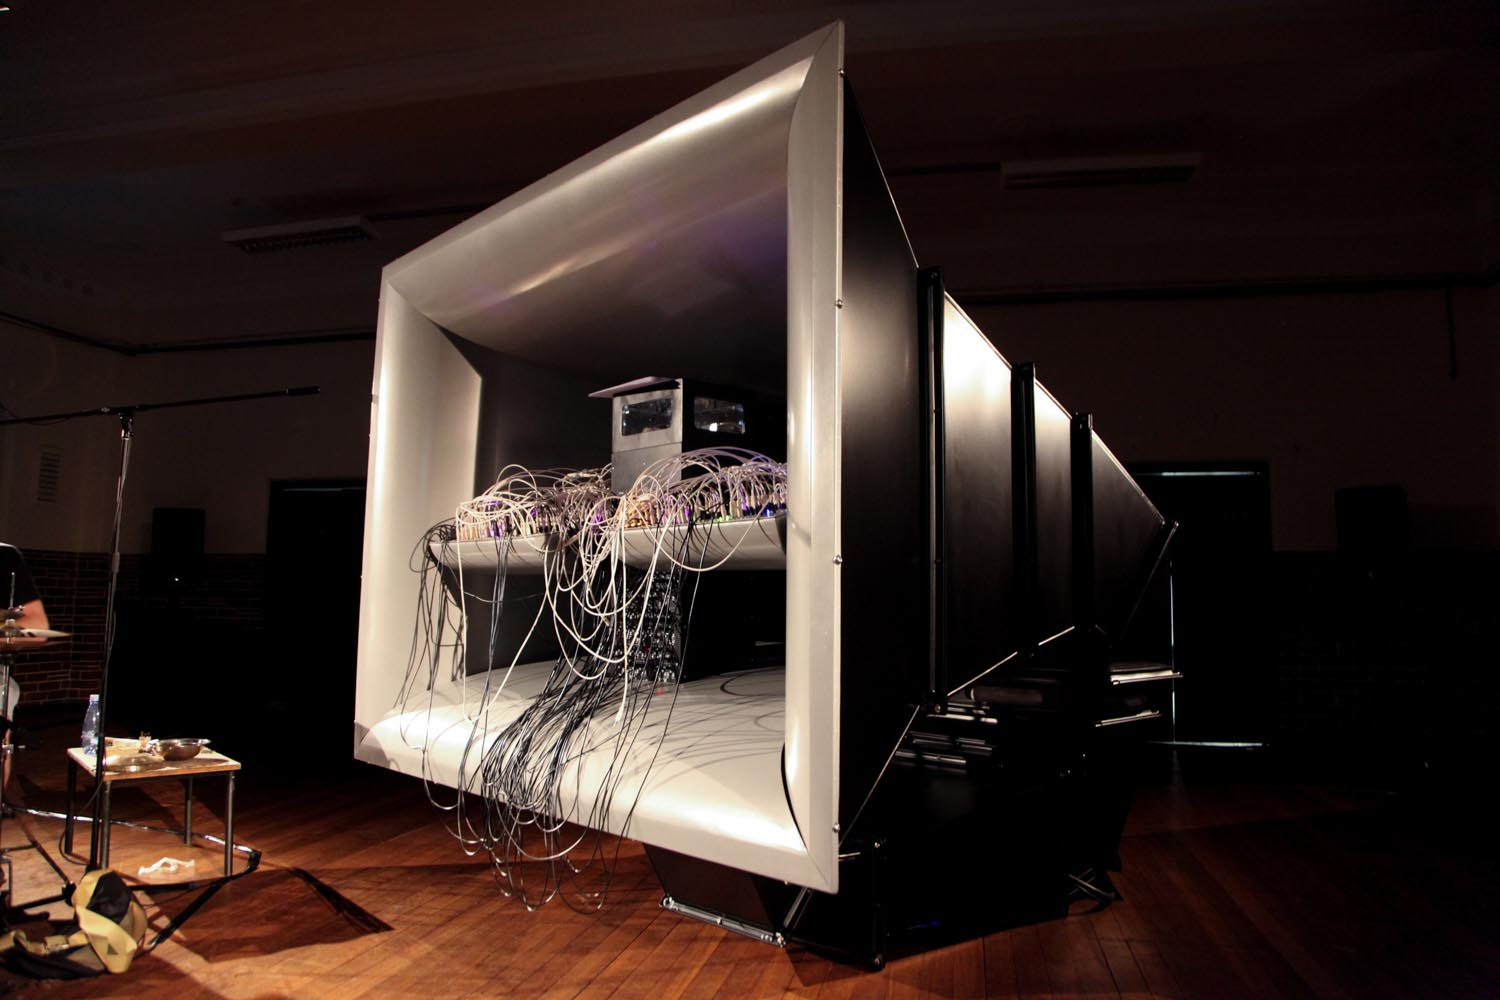 Artist Makes Synthesizer from His Own Stem Cells